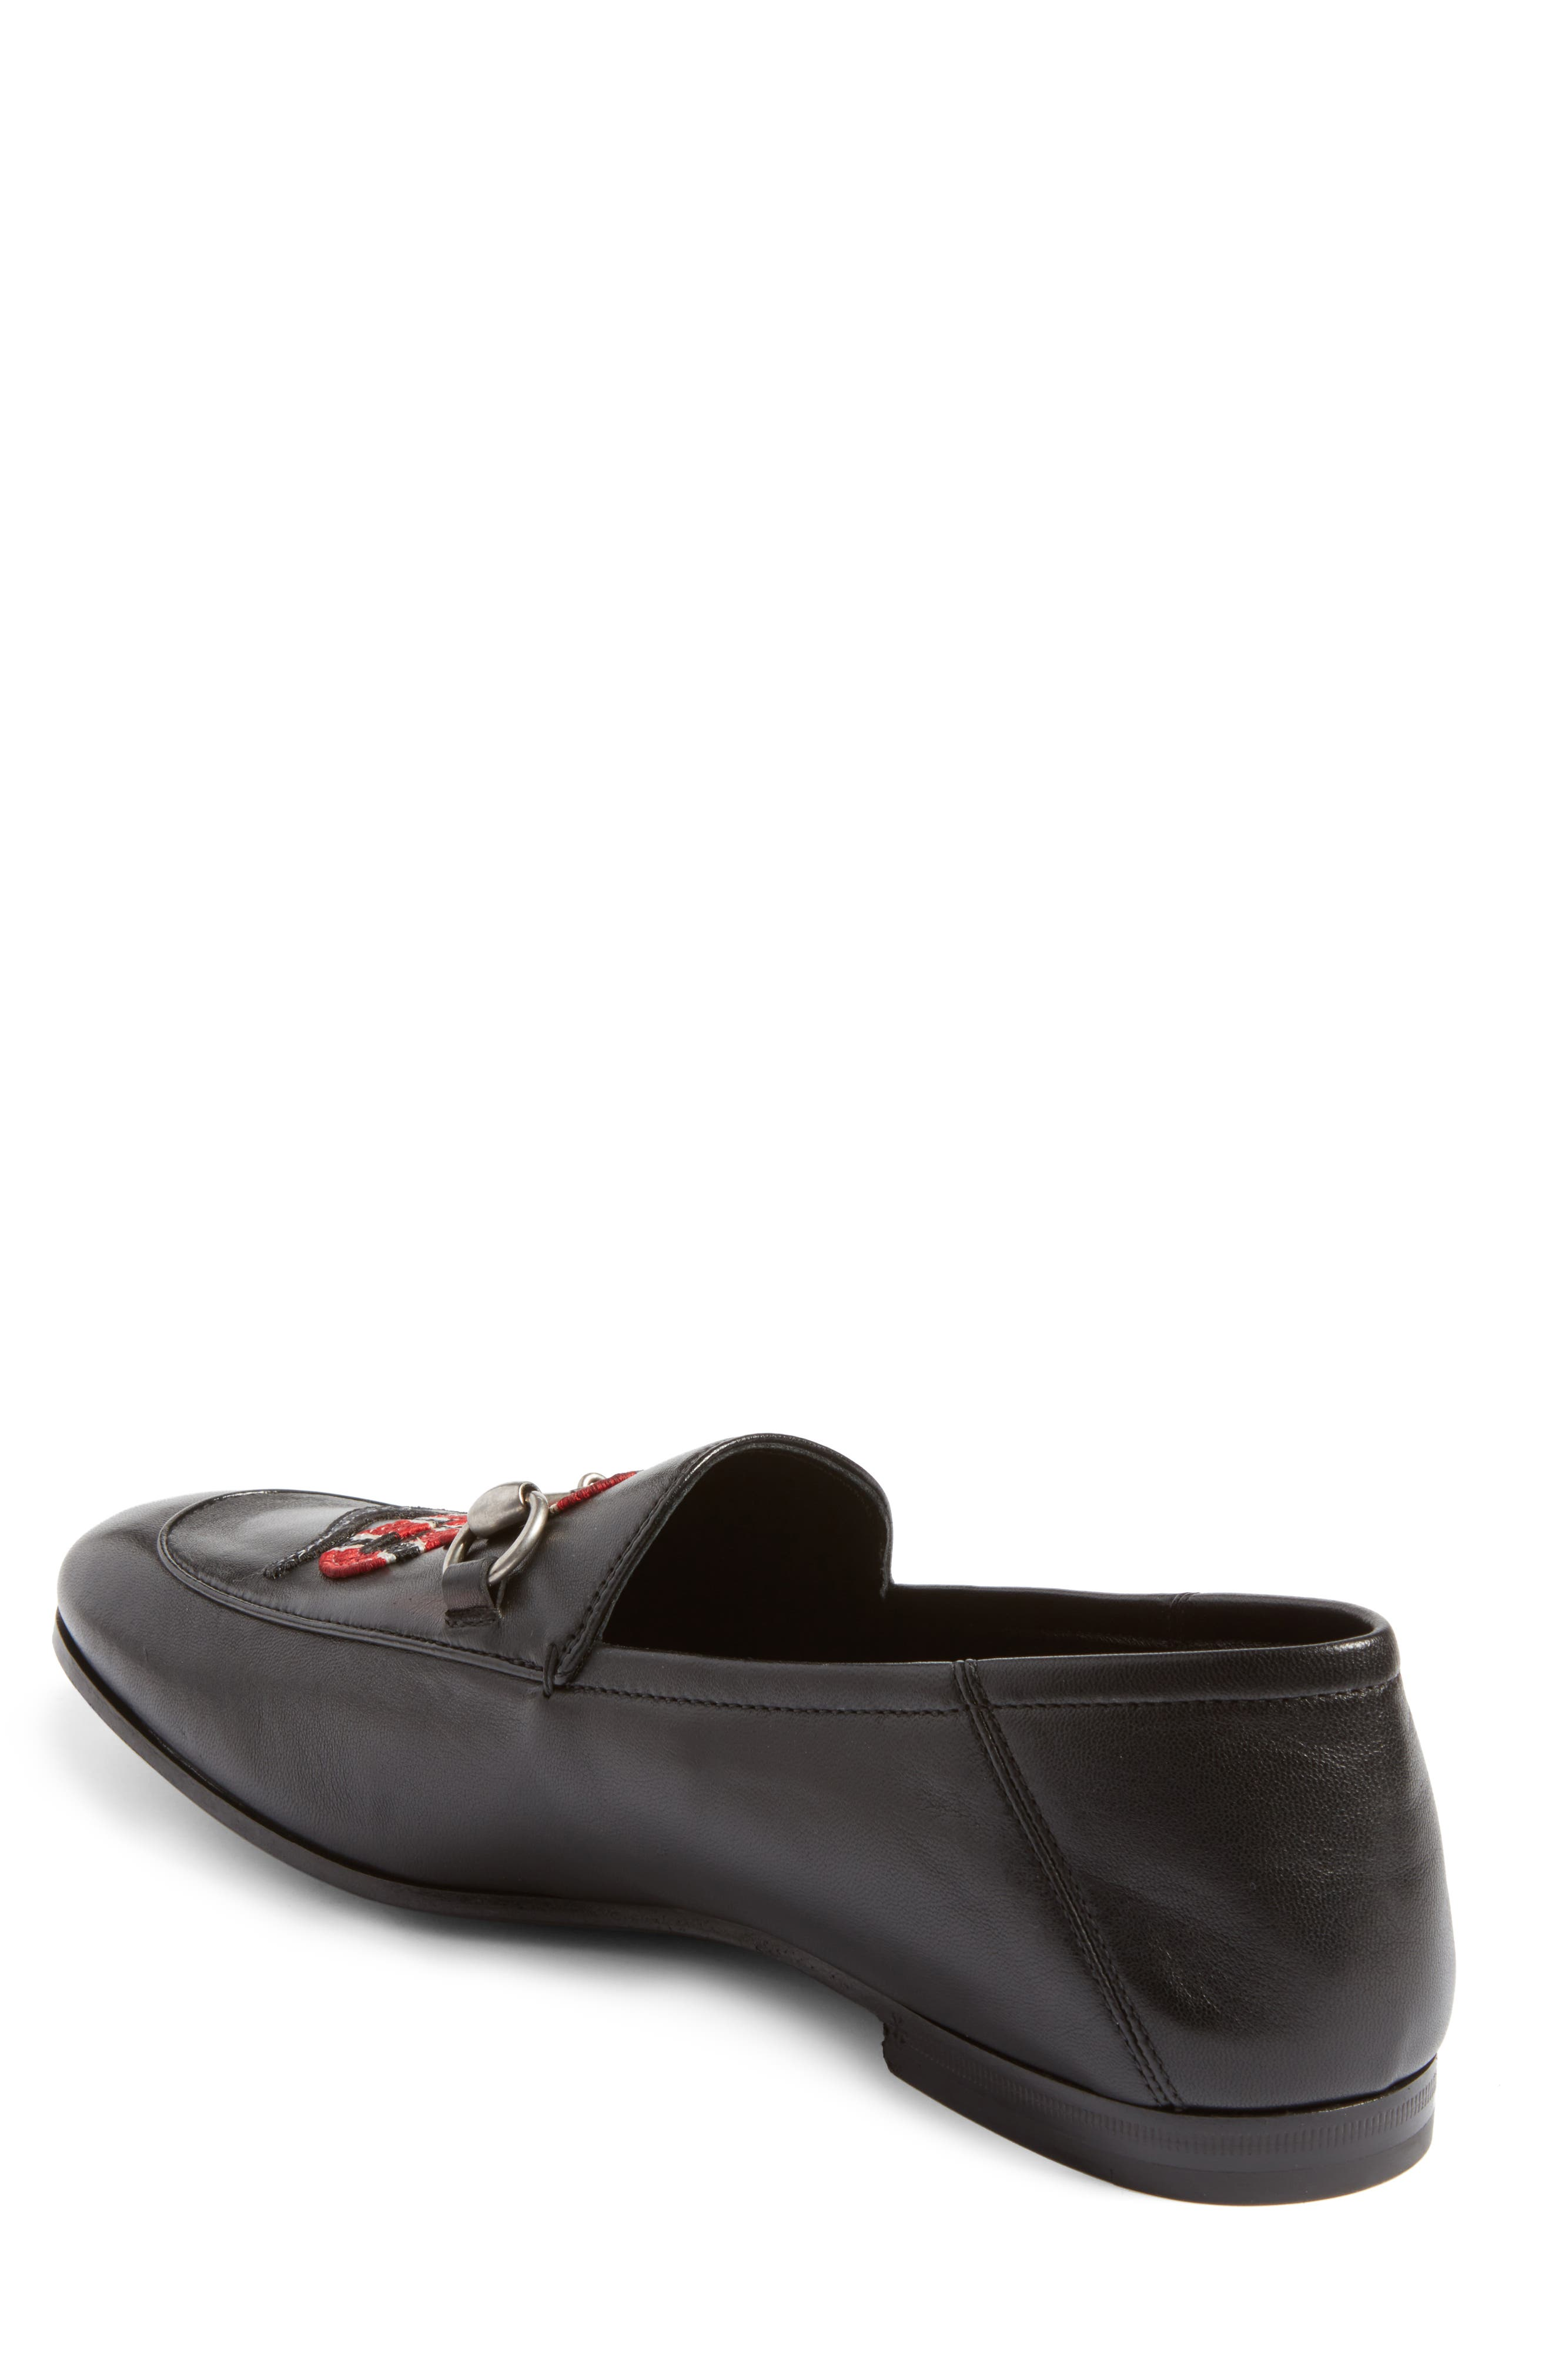 Brixton Leather Loafer,                             Alternate thumbnail 9, color,